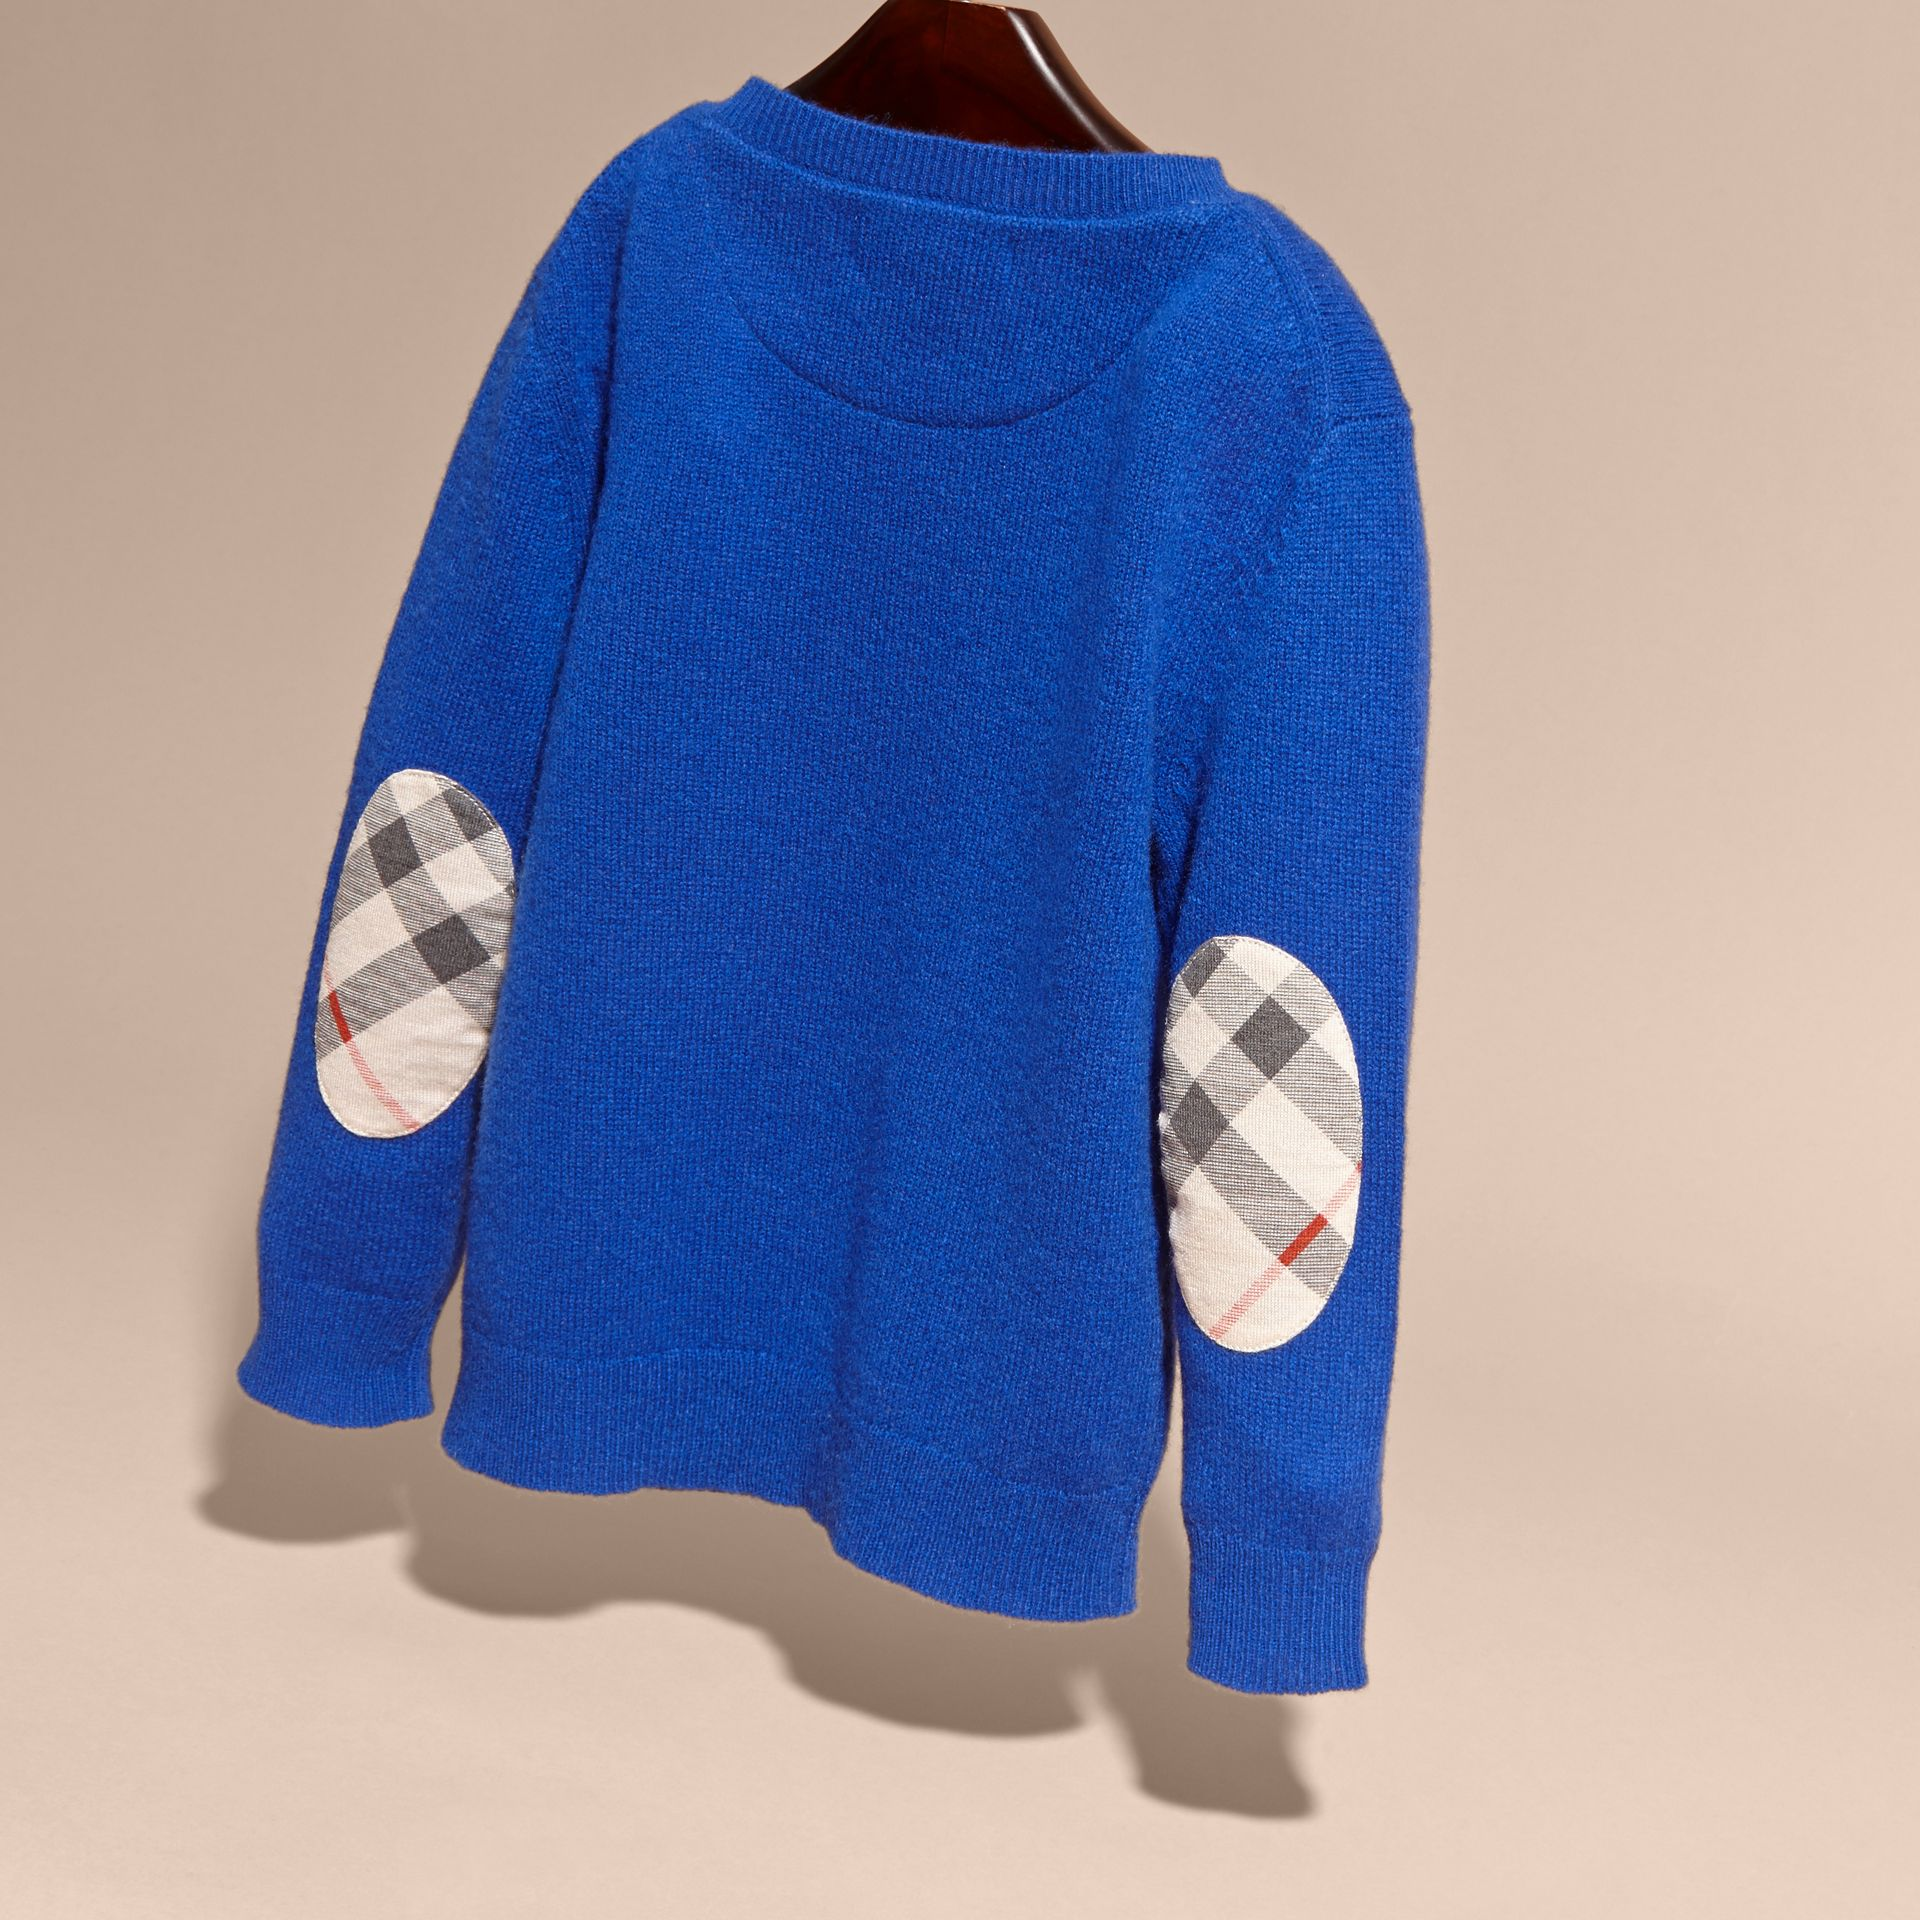 Brilliant blue Check Elbow Patch Cashmere Sweater Brilliant Blue - gallery image 3